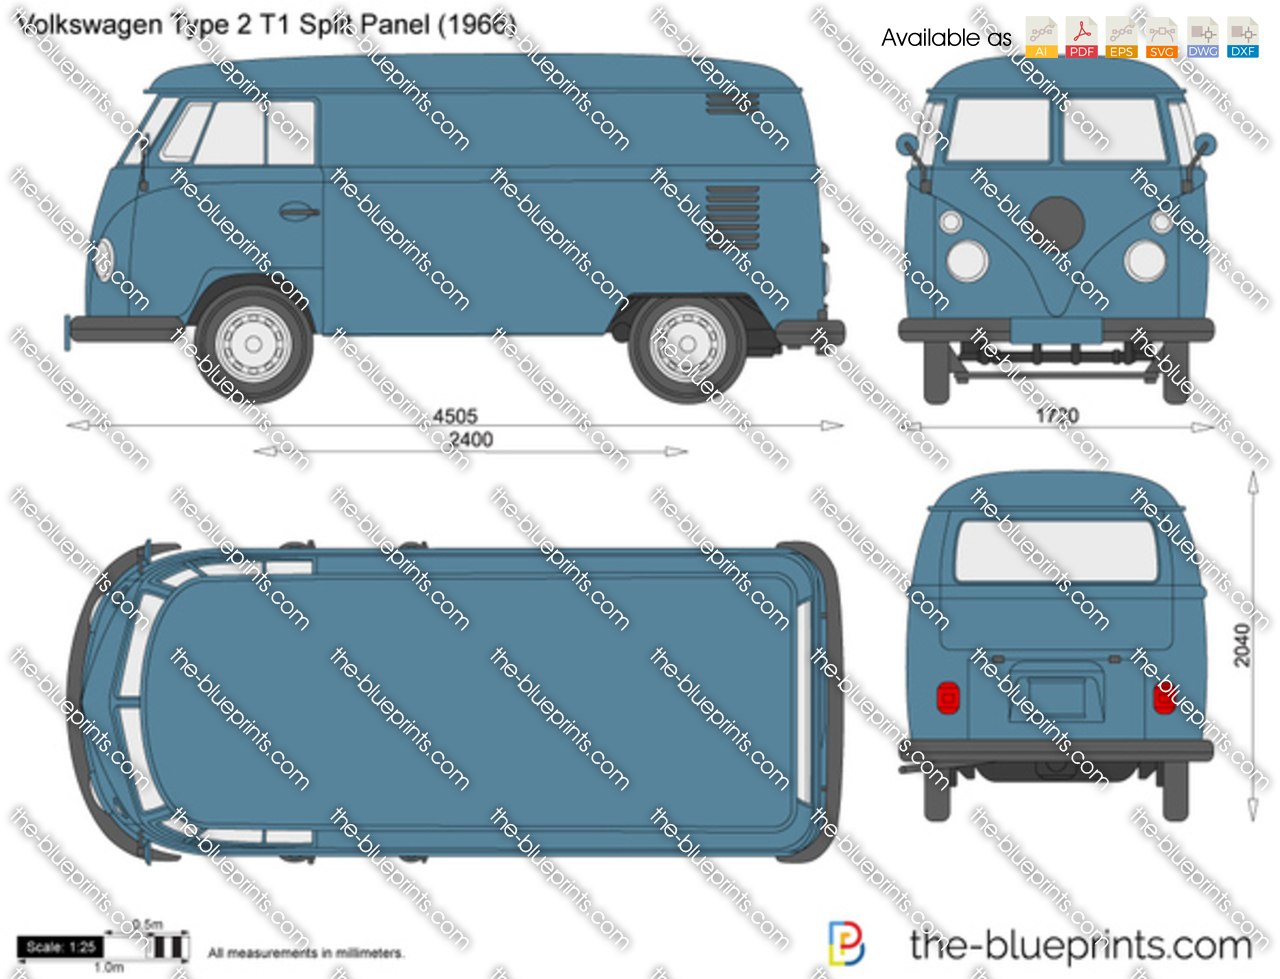 1958 Volkswagen Type 2 T1 Split Panel